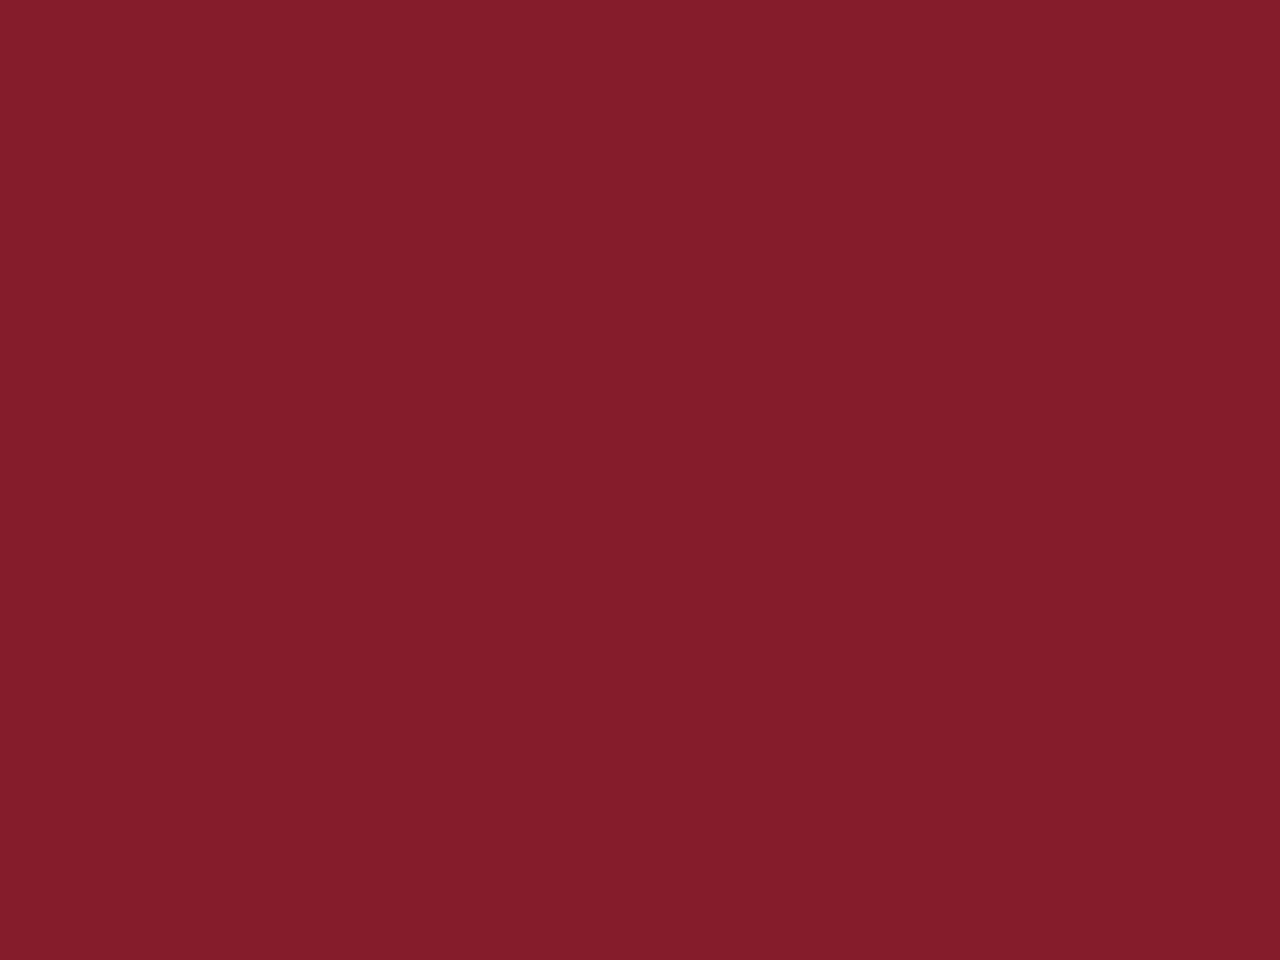 1280x960 Antique Ruby Solid Color Background